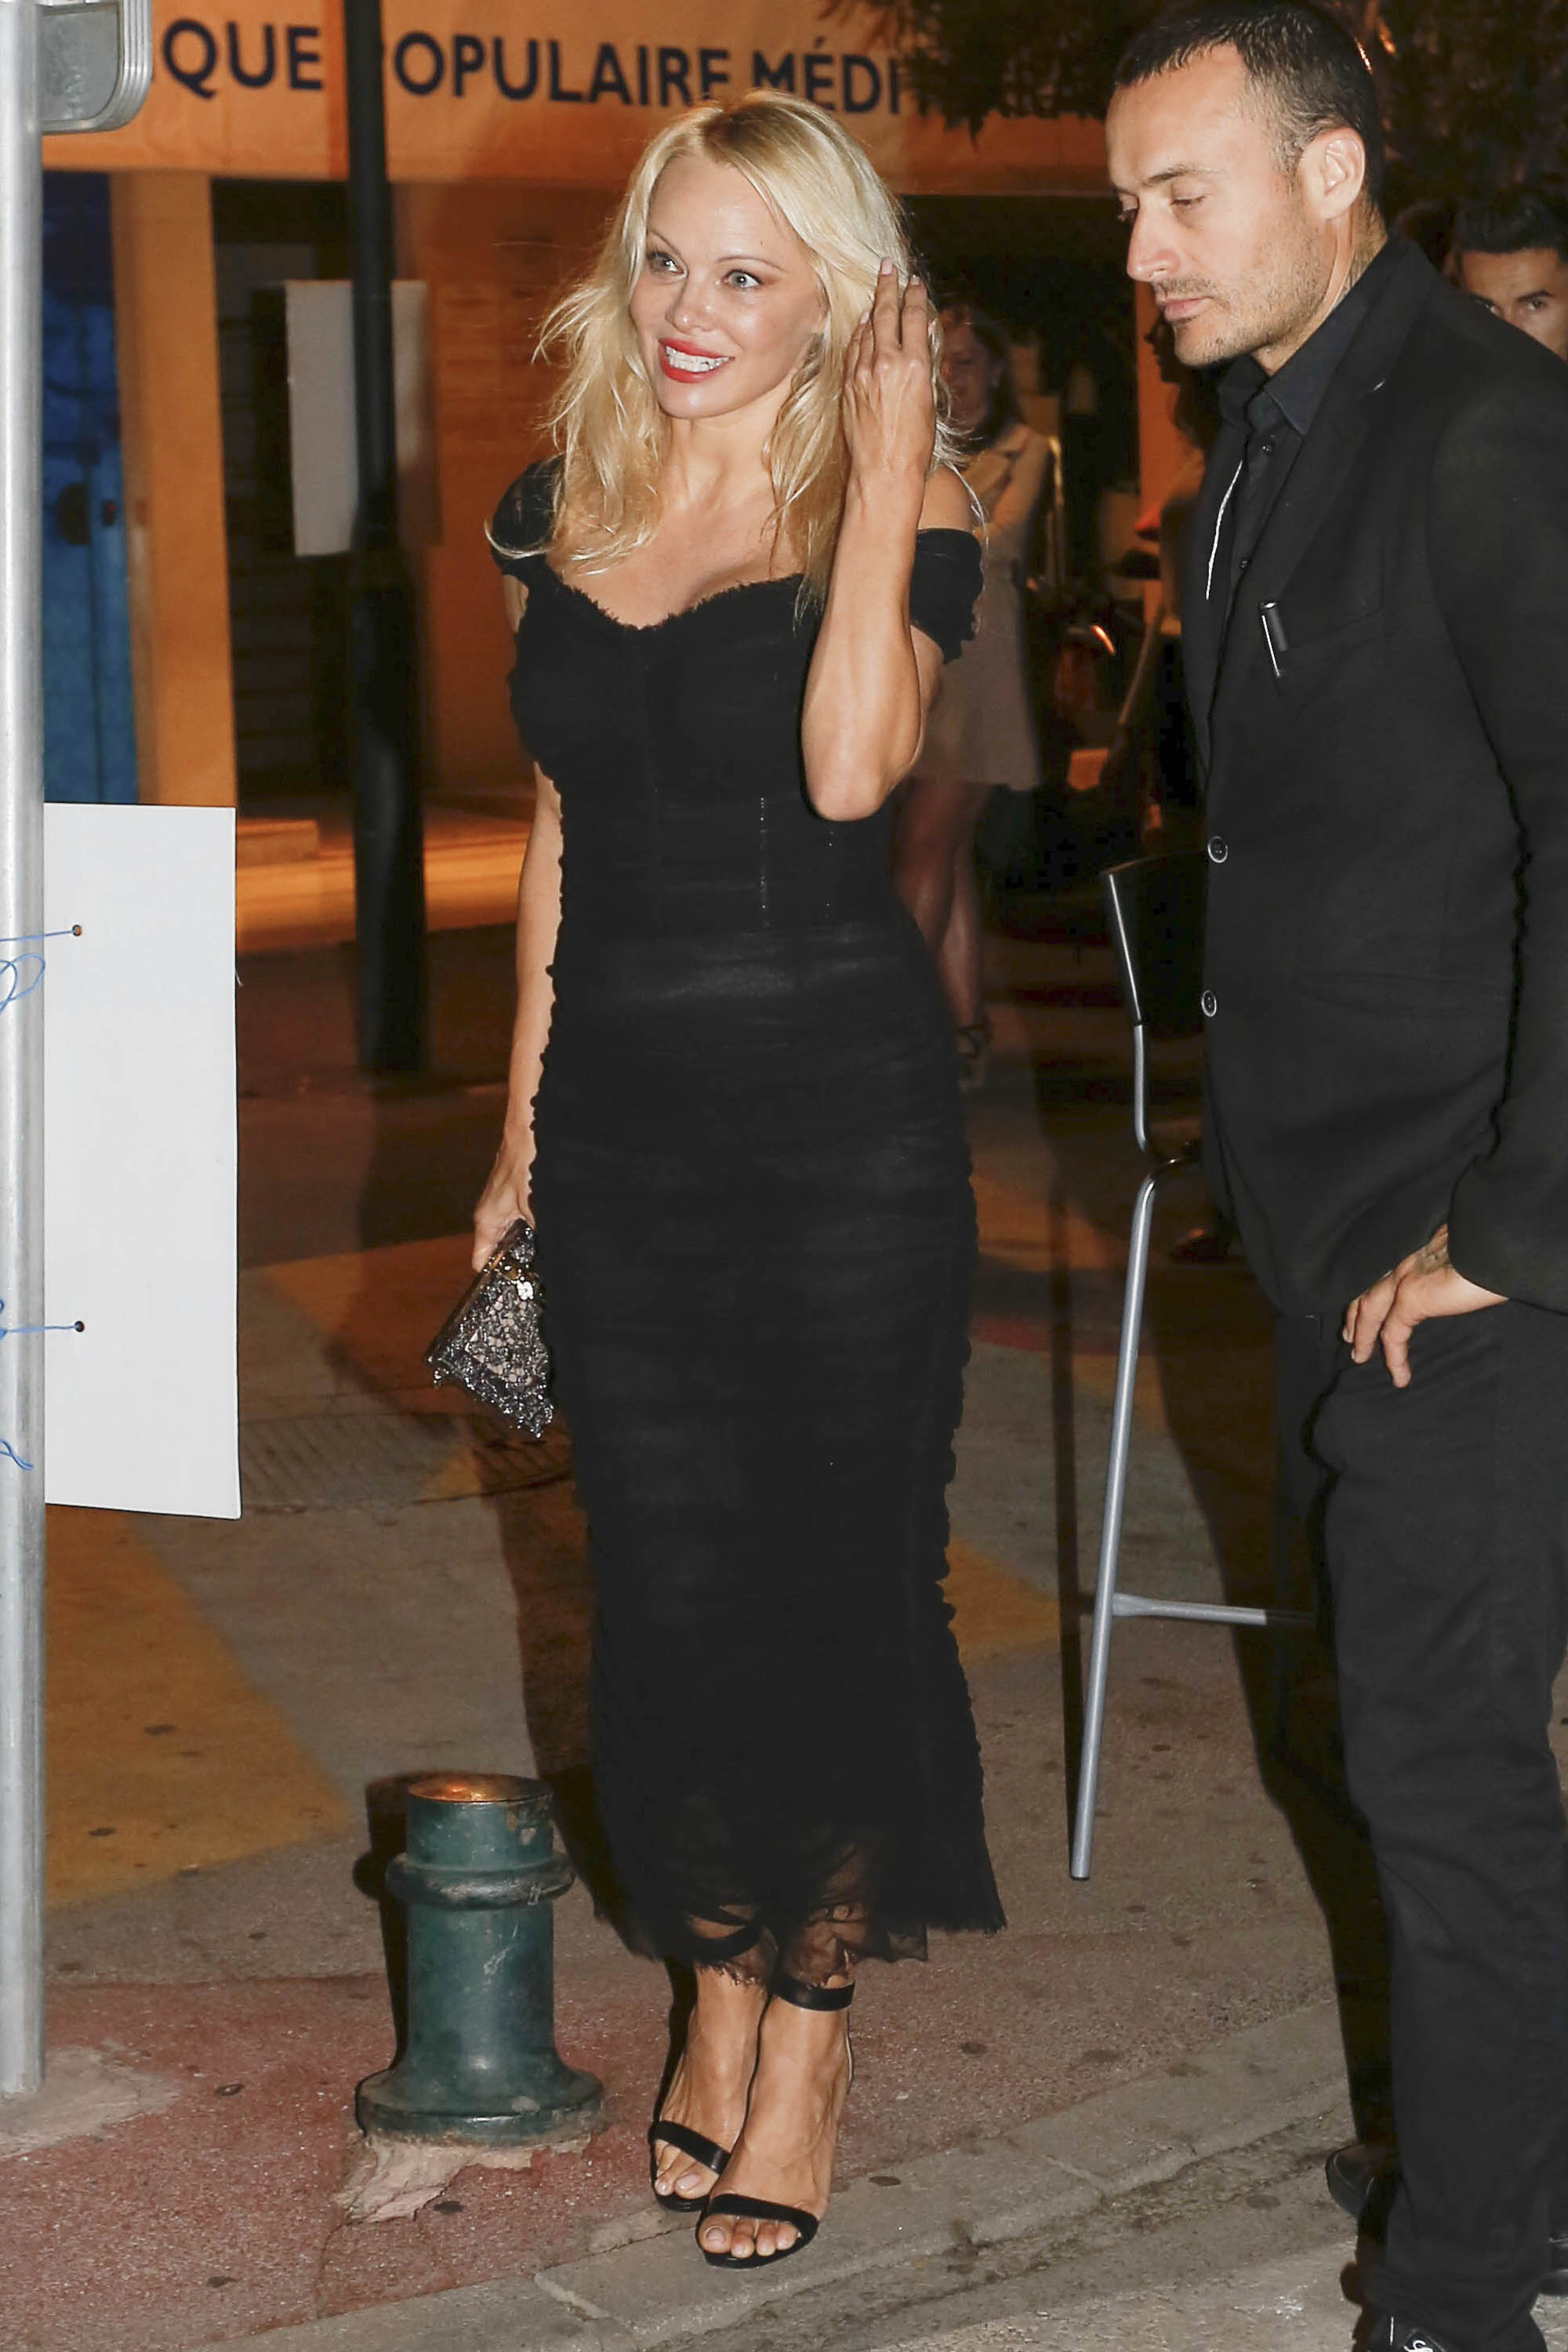 Pamela Anderson Flashes her Famous Curves while Leaving Vip Room in St Tropez with Male Friend